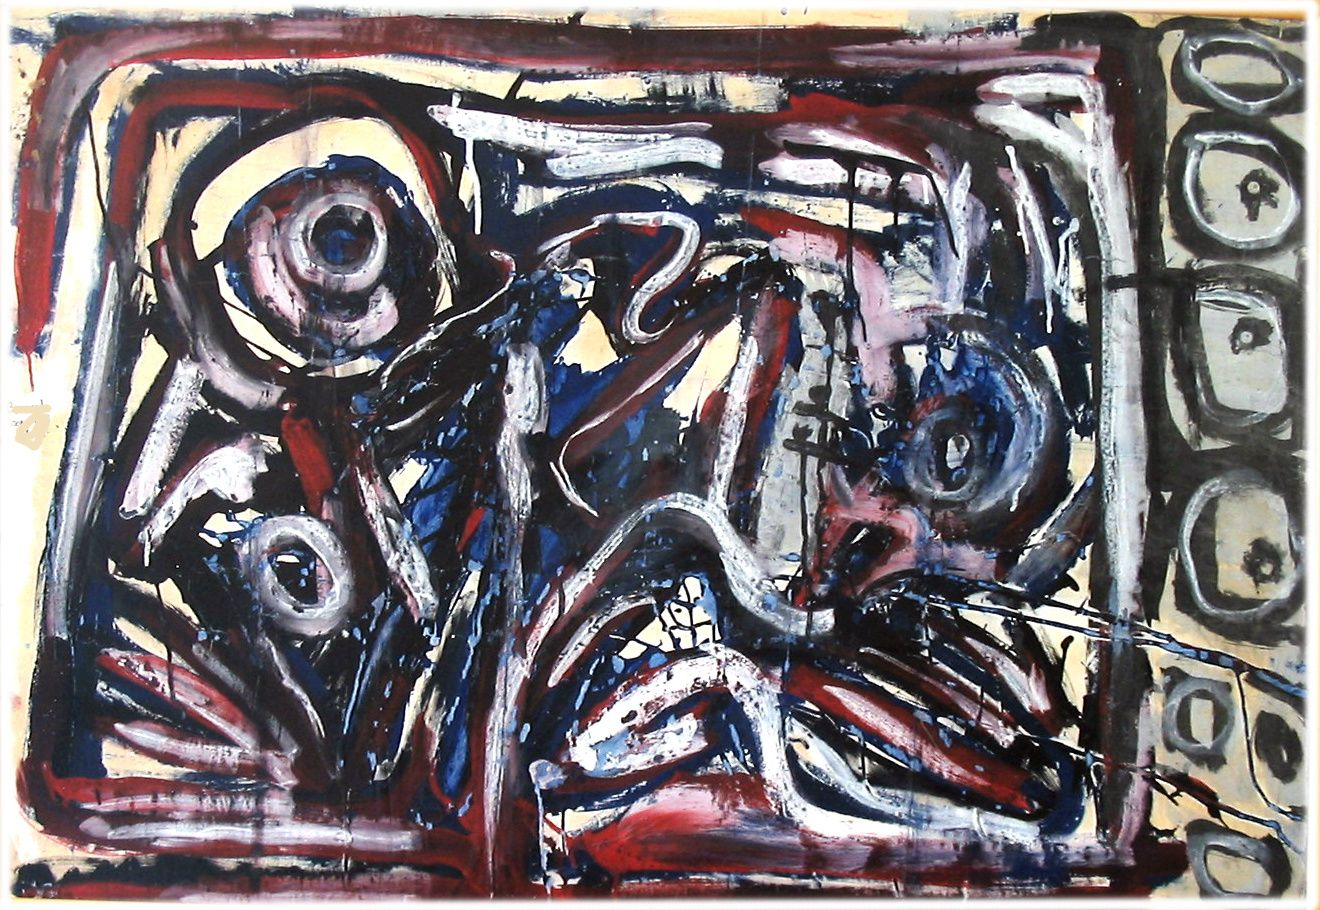 5-Technique mixte - 75 x 110 cm.